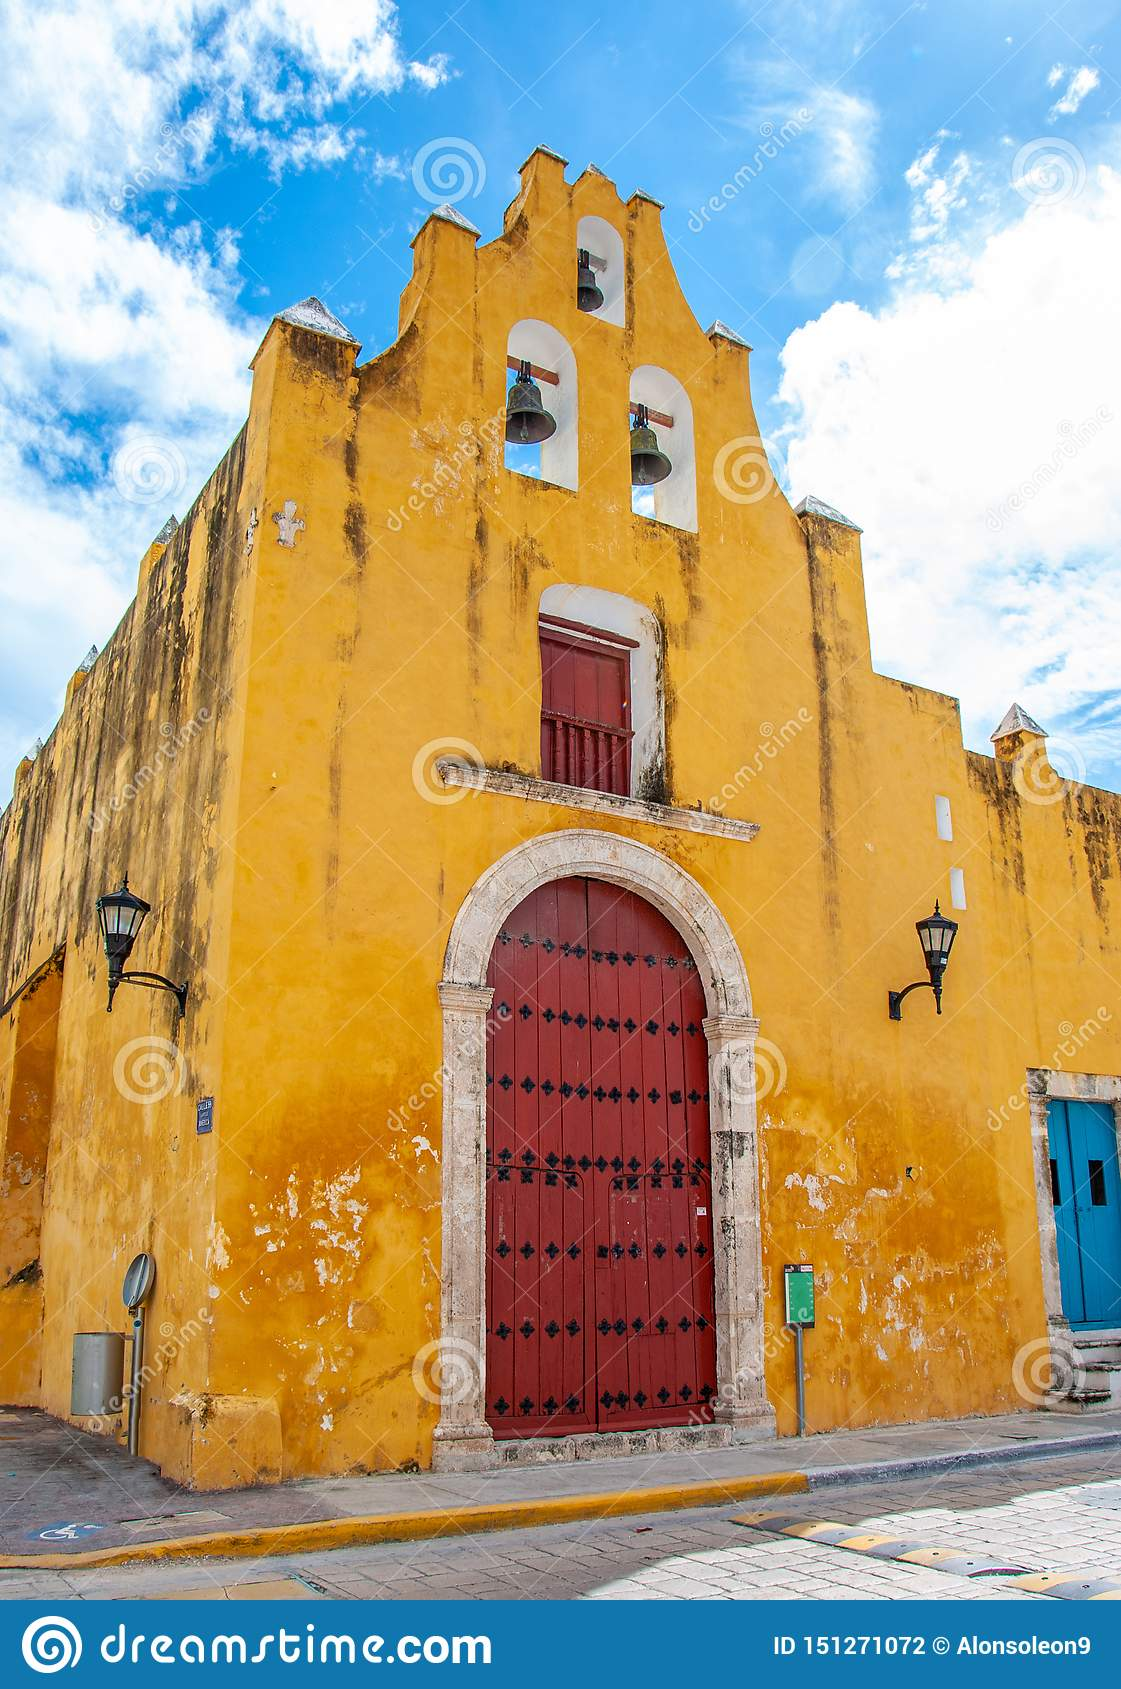 Church of the sweet name of Jesus in the city of Campeche, Mexico